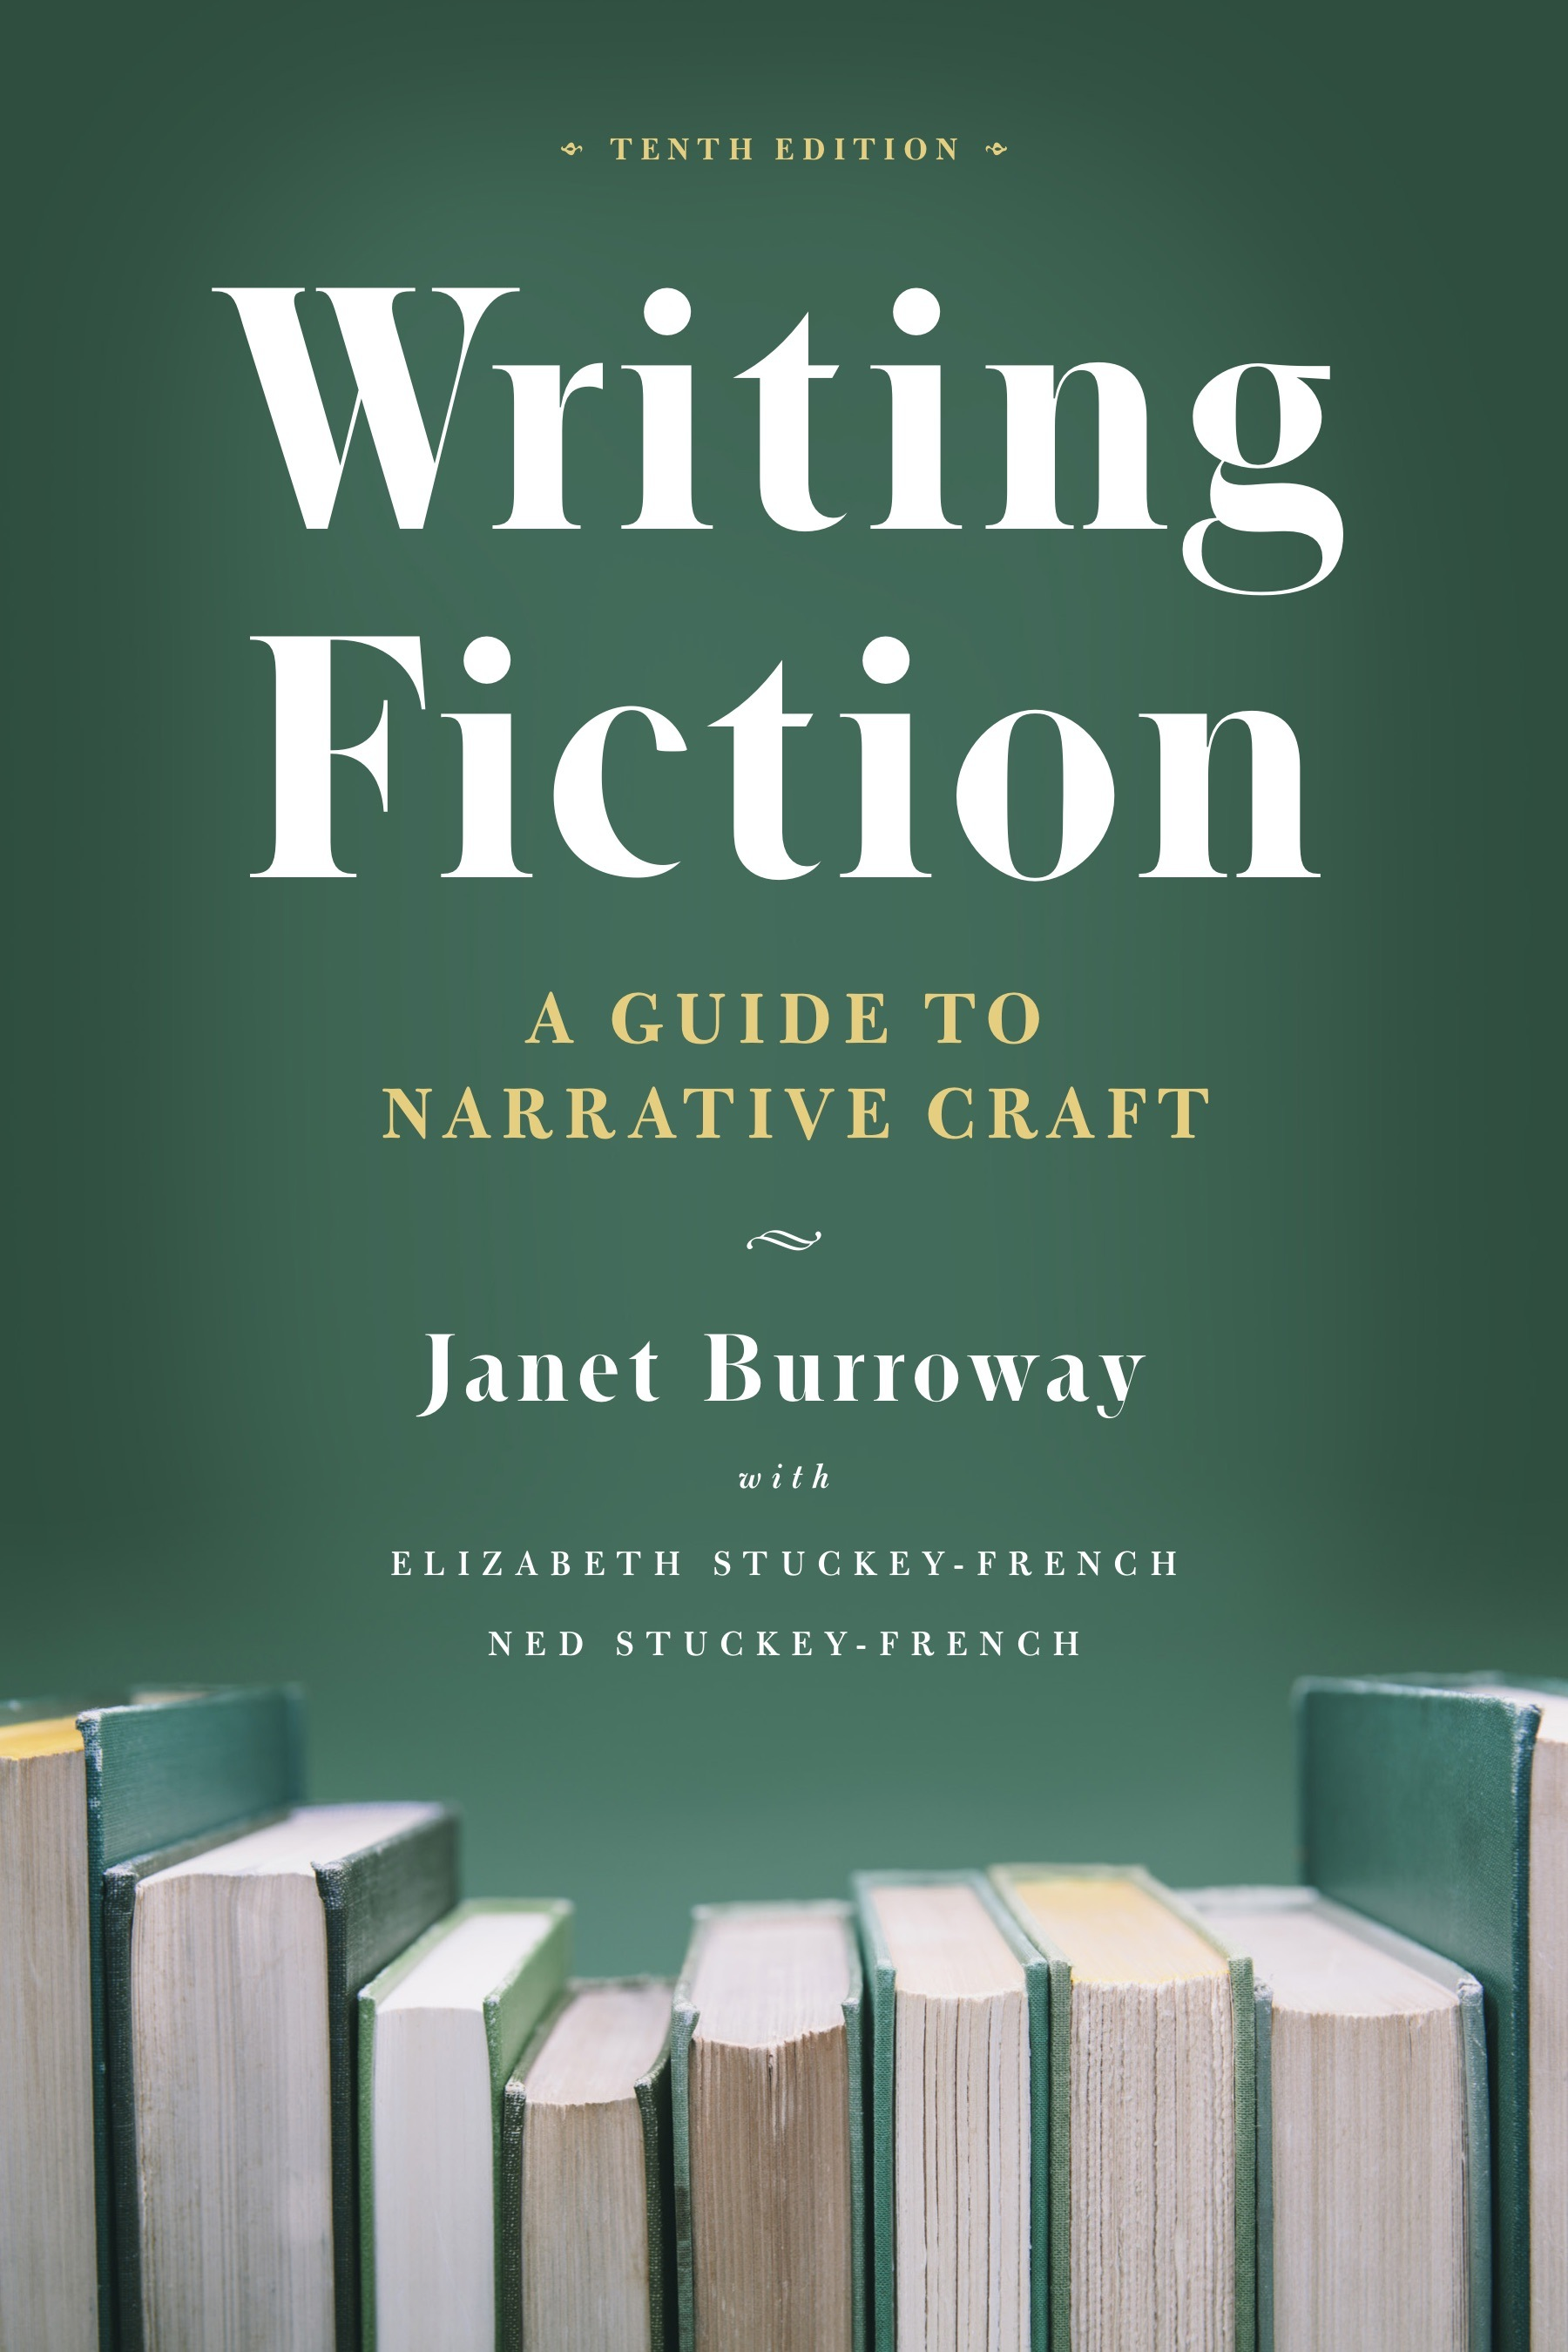 writing fiction a guide to narrative craft 9th edition free pdf